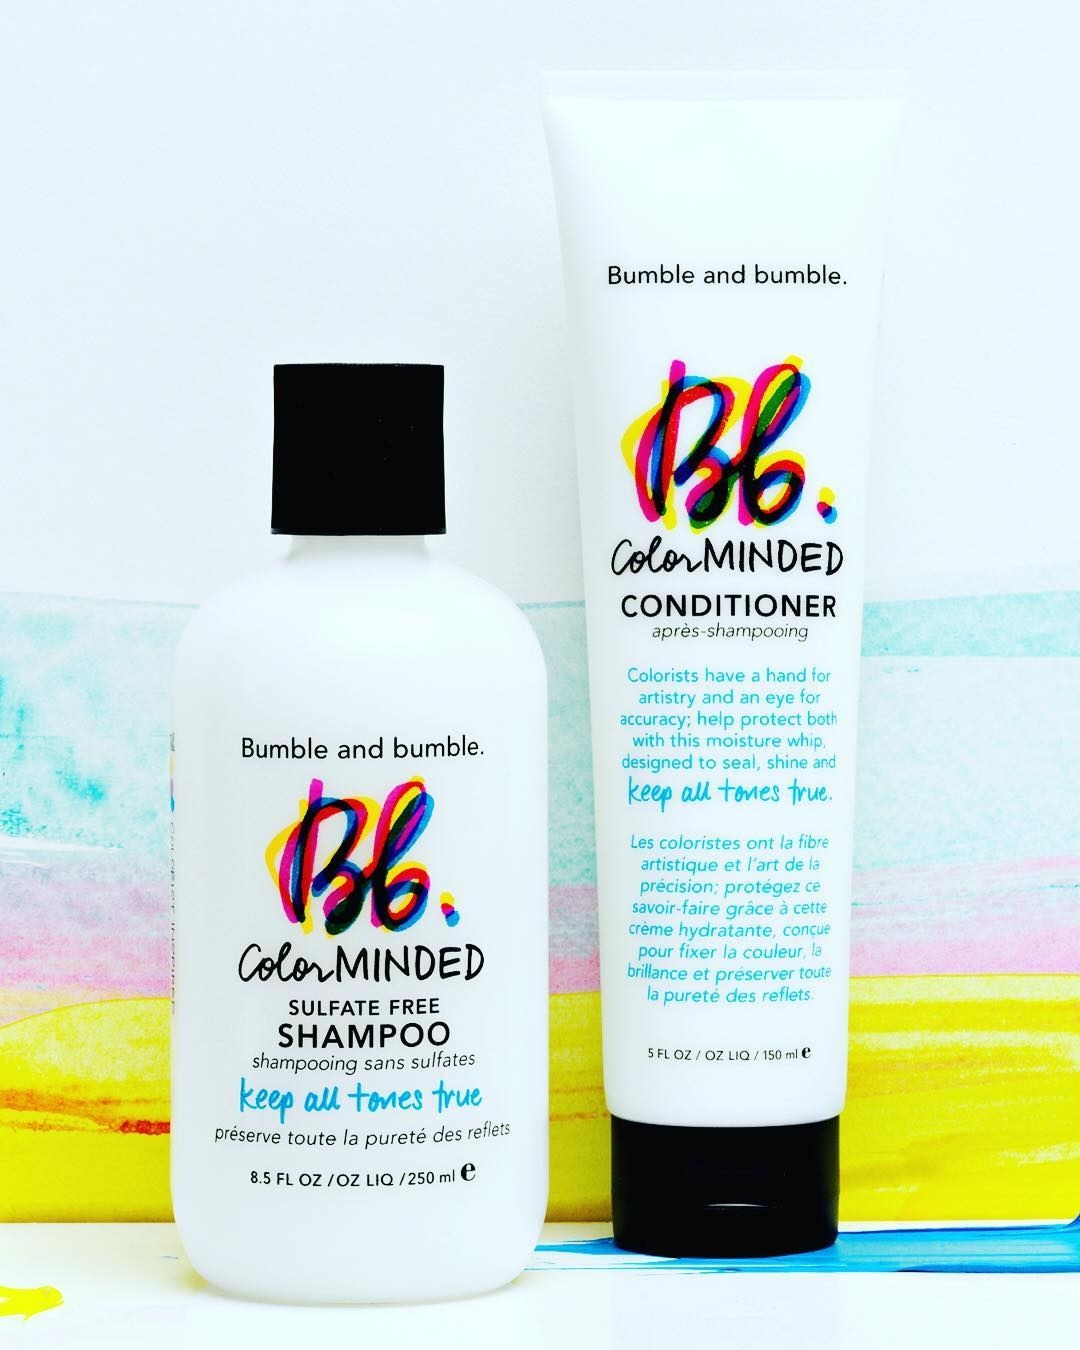 The two products on a colourful background